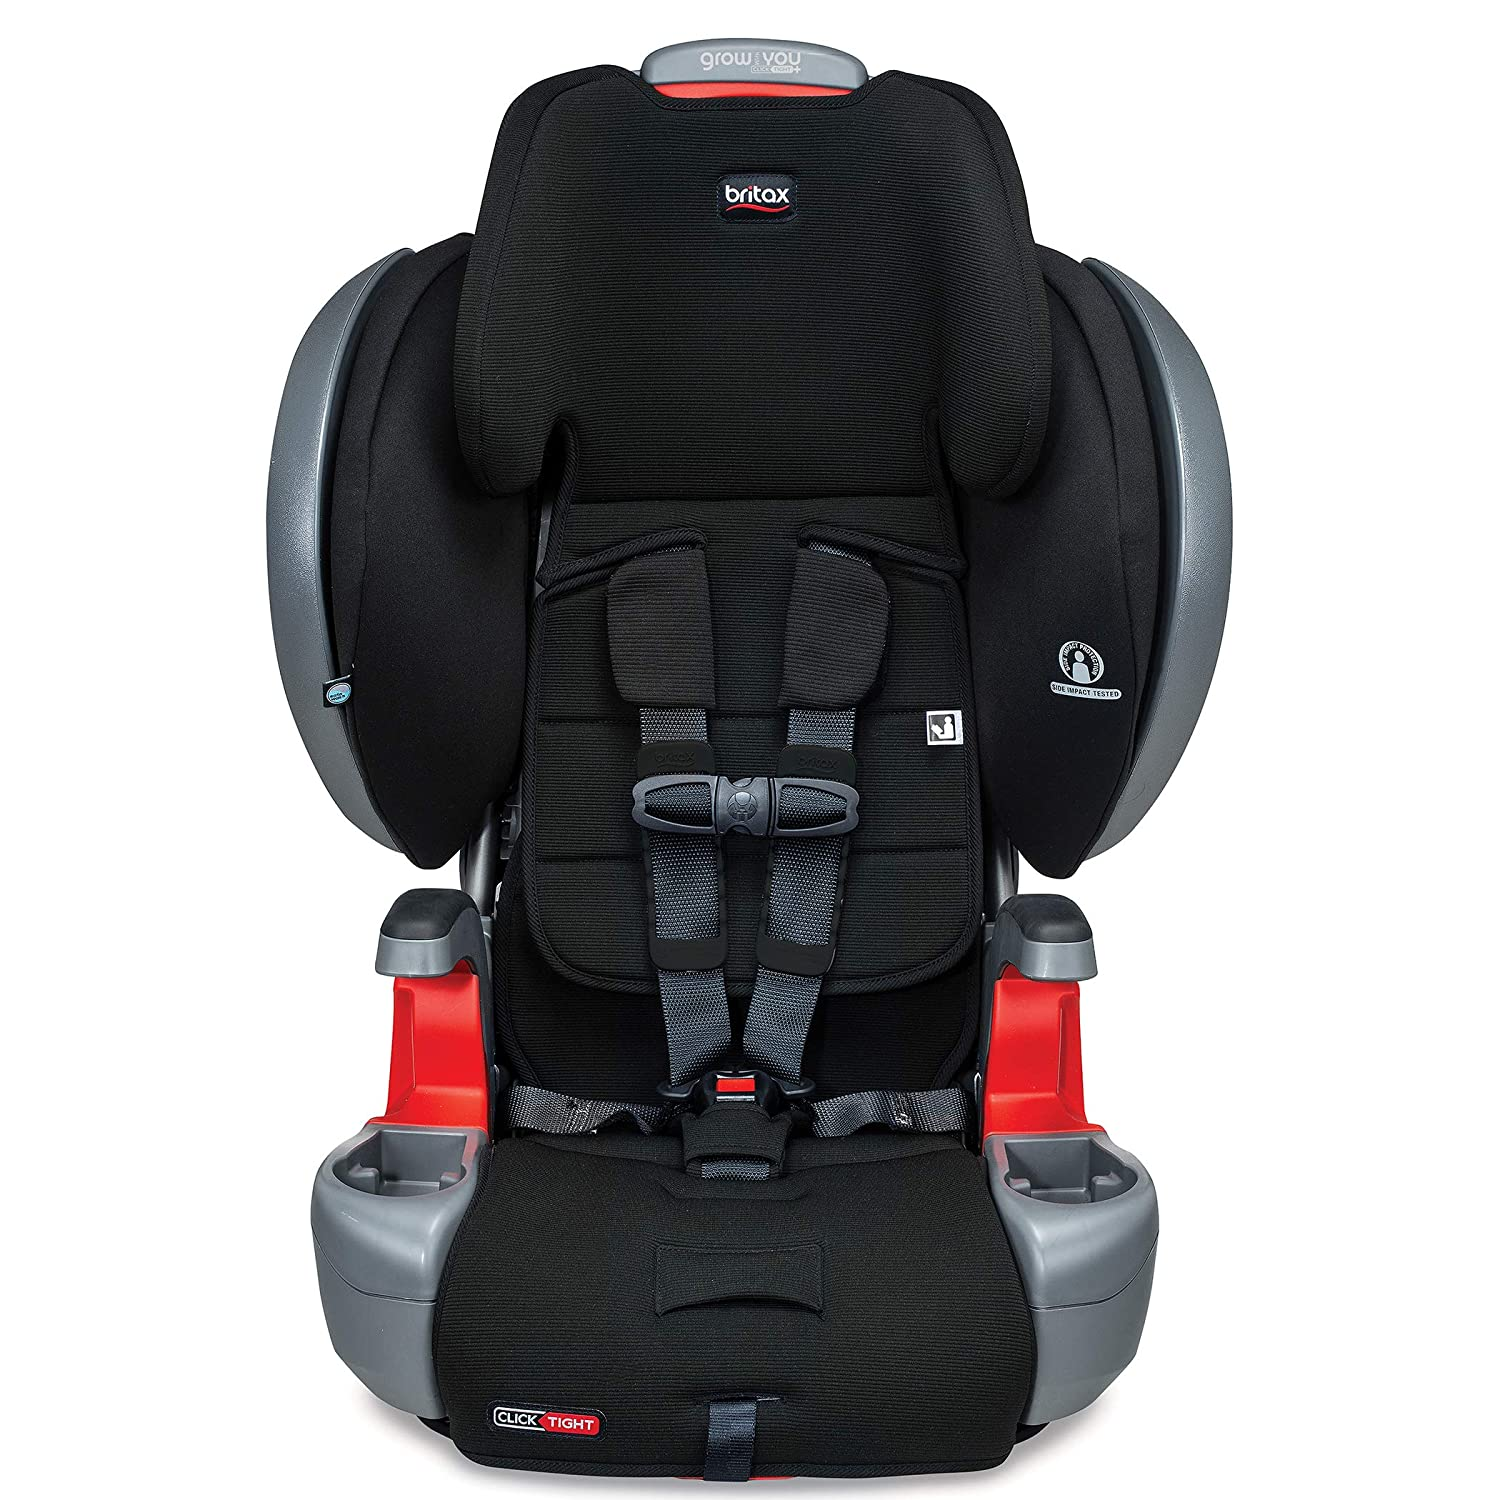 Britax Grow Car Seat Safest Car Seat for 4 year old